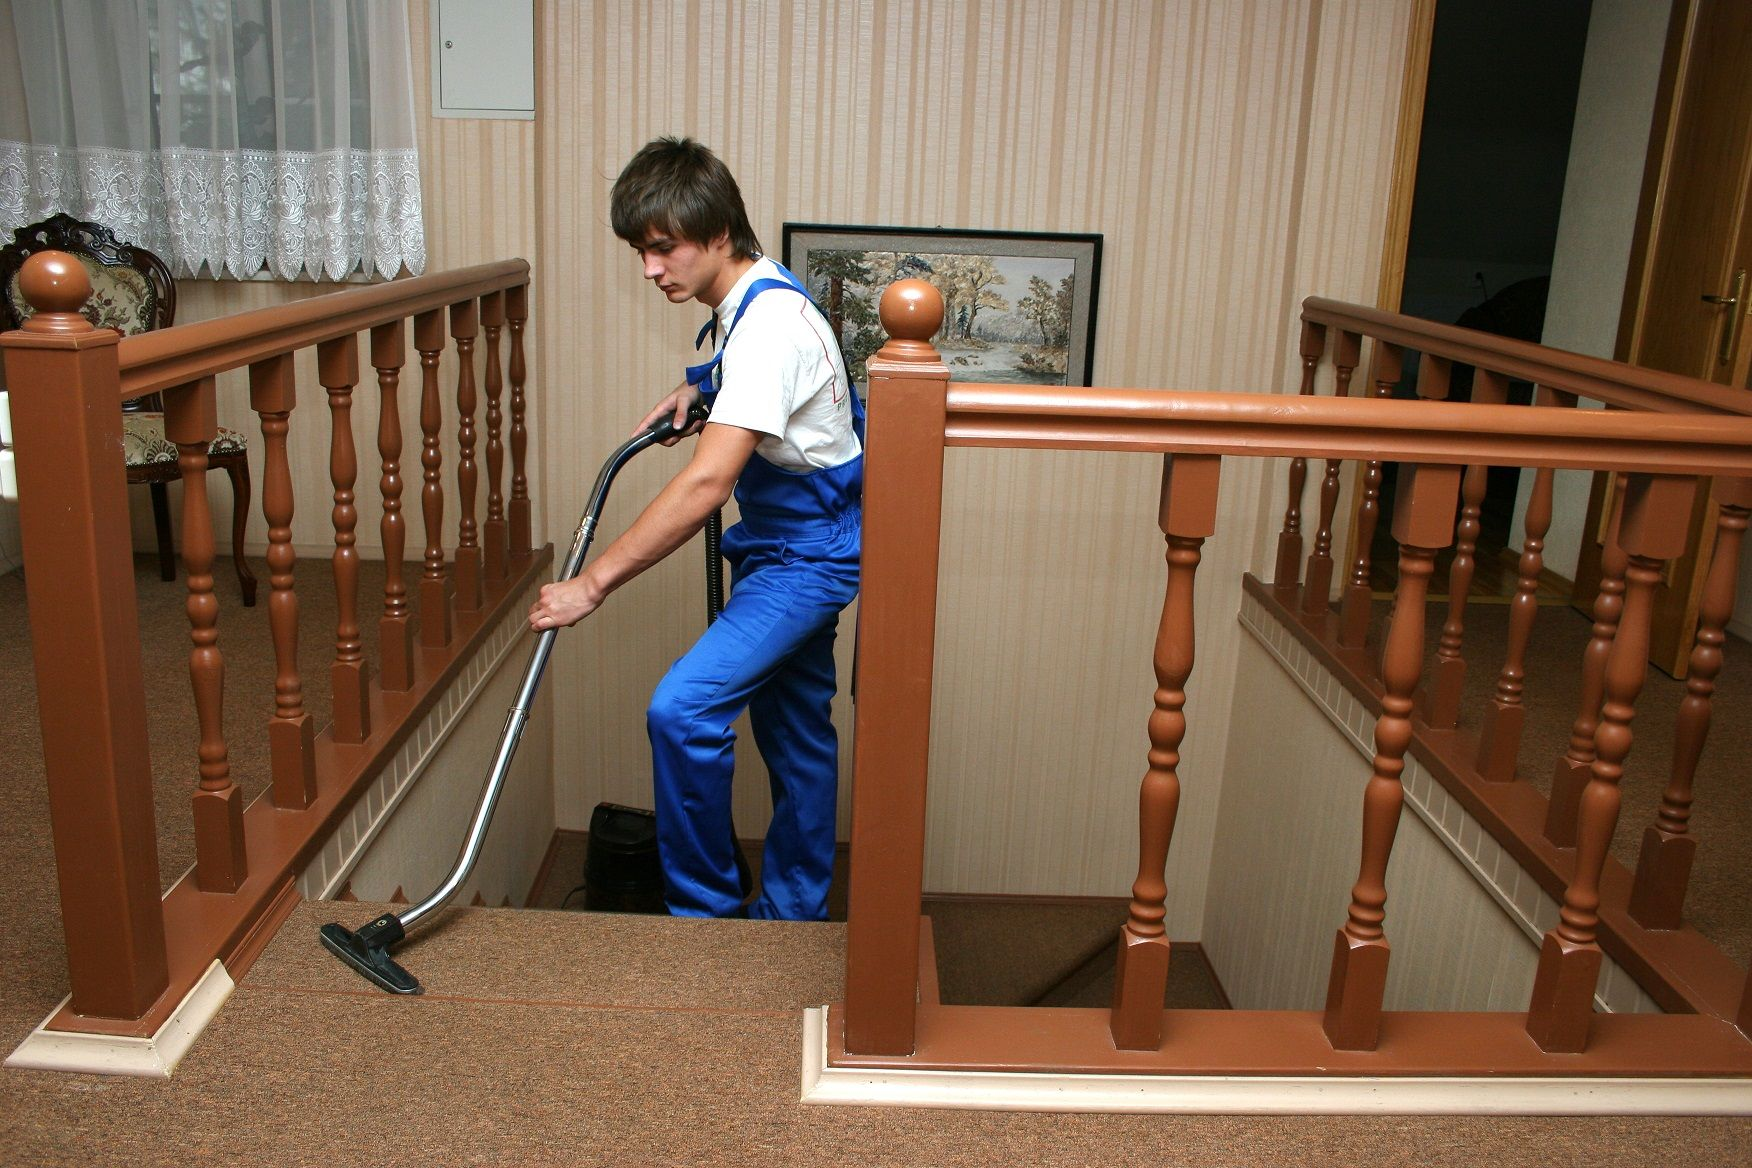 Cleaning & Maintenance | How to clean carpet, Carpet cleaning service,  Professional carpet cleaning